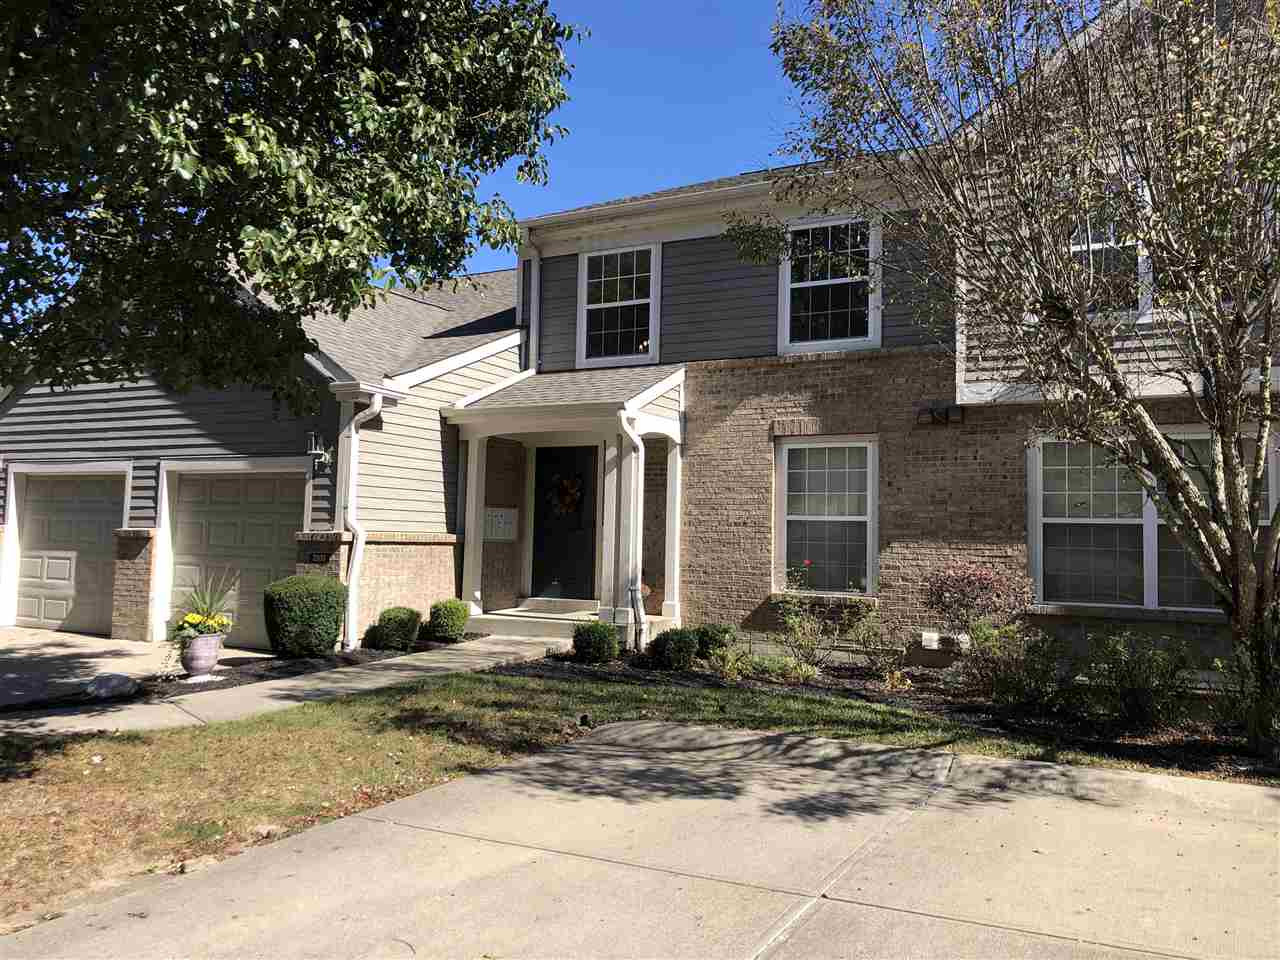 Photo 3 for 2103 Clareglen Ct, 101 Crescent Springs, KY 41017